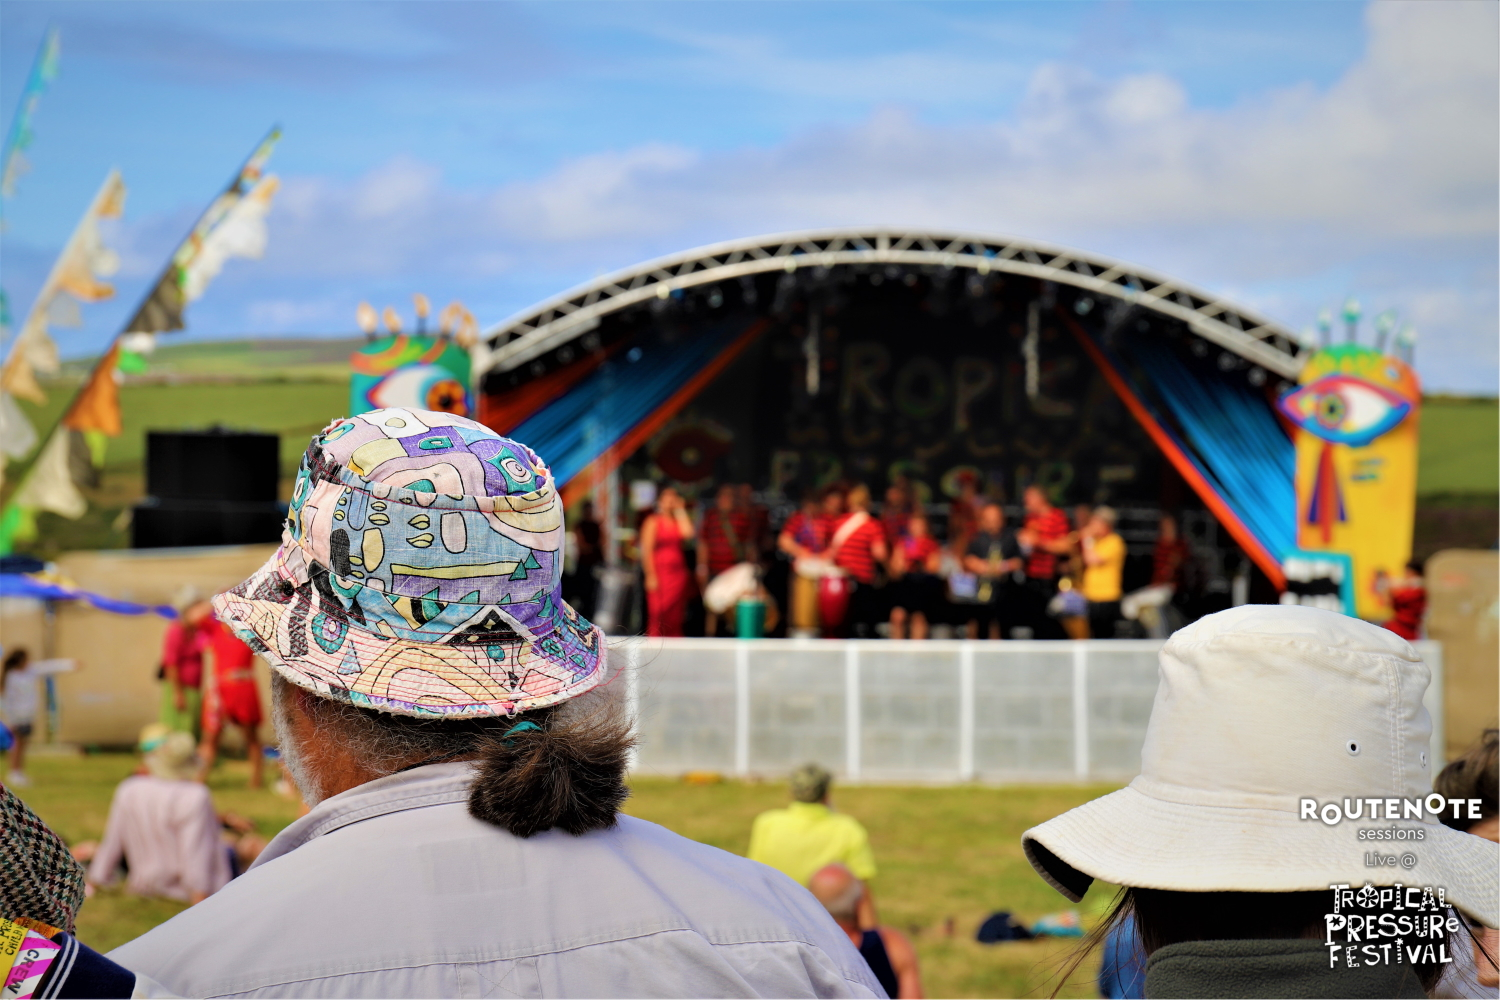 Tropical Pressure festival routenote sessions artists colourful cornwall world music caribbean latin american africa music review